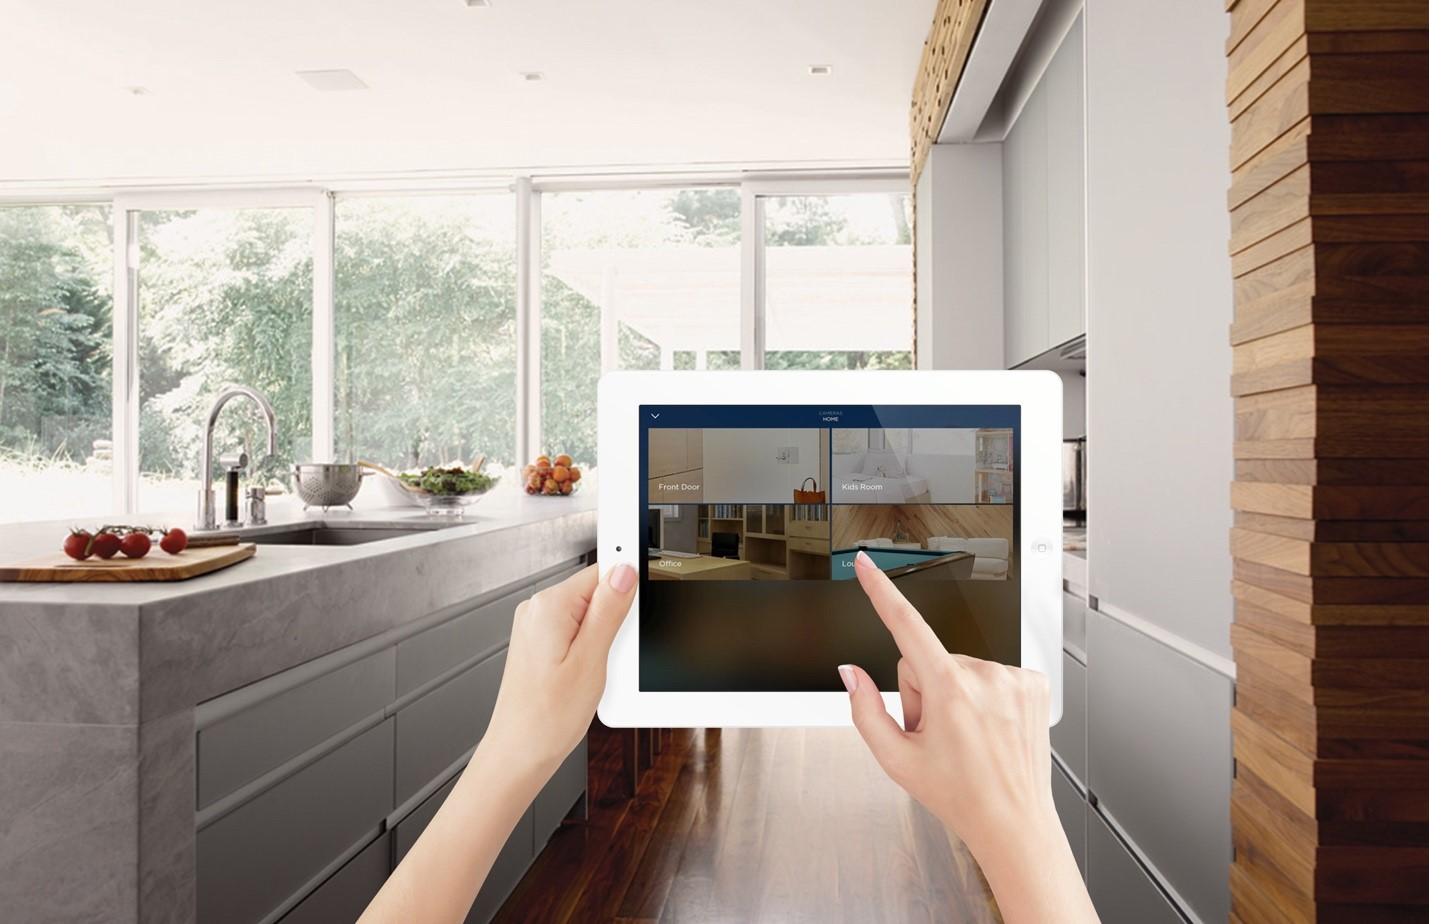 Thinking About A Whole Home Automation Solution?